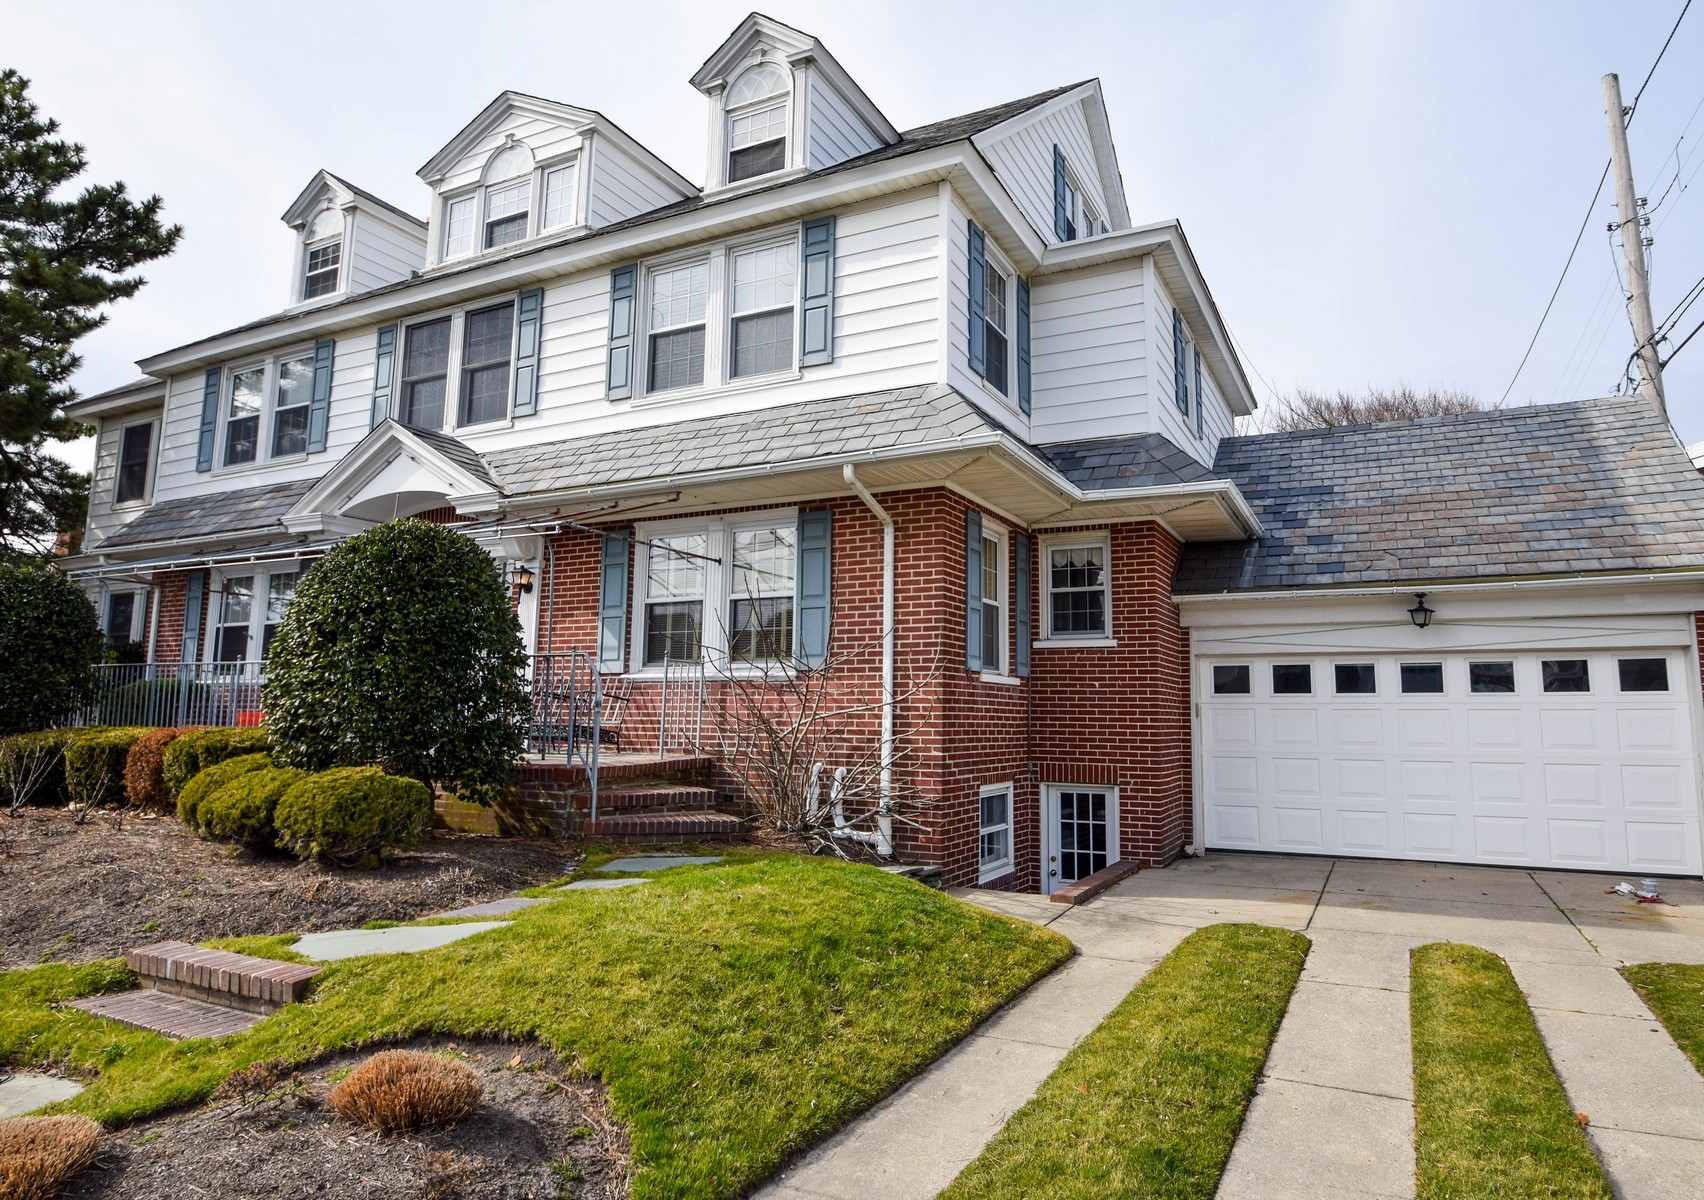 Single Family Home for Sale at 8807 Atlantic Avenue Margate, New Jersey 08402 United States